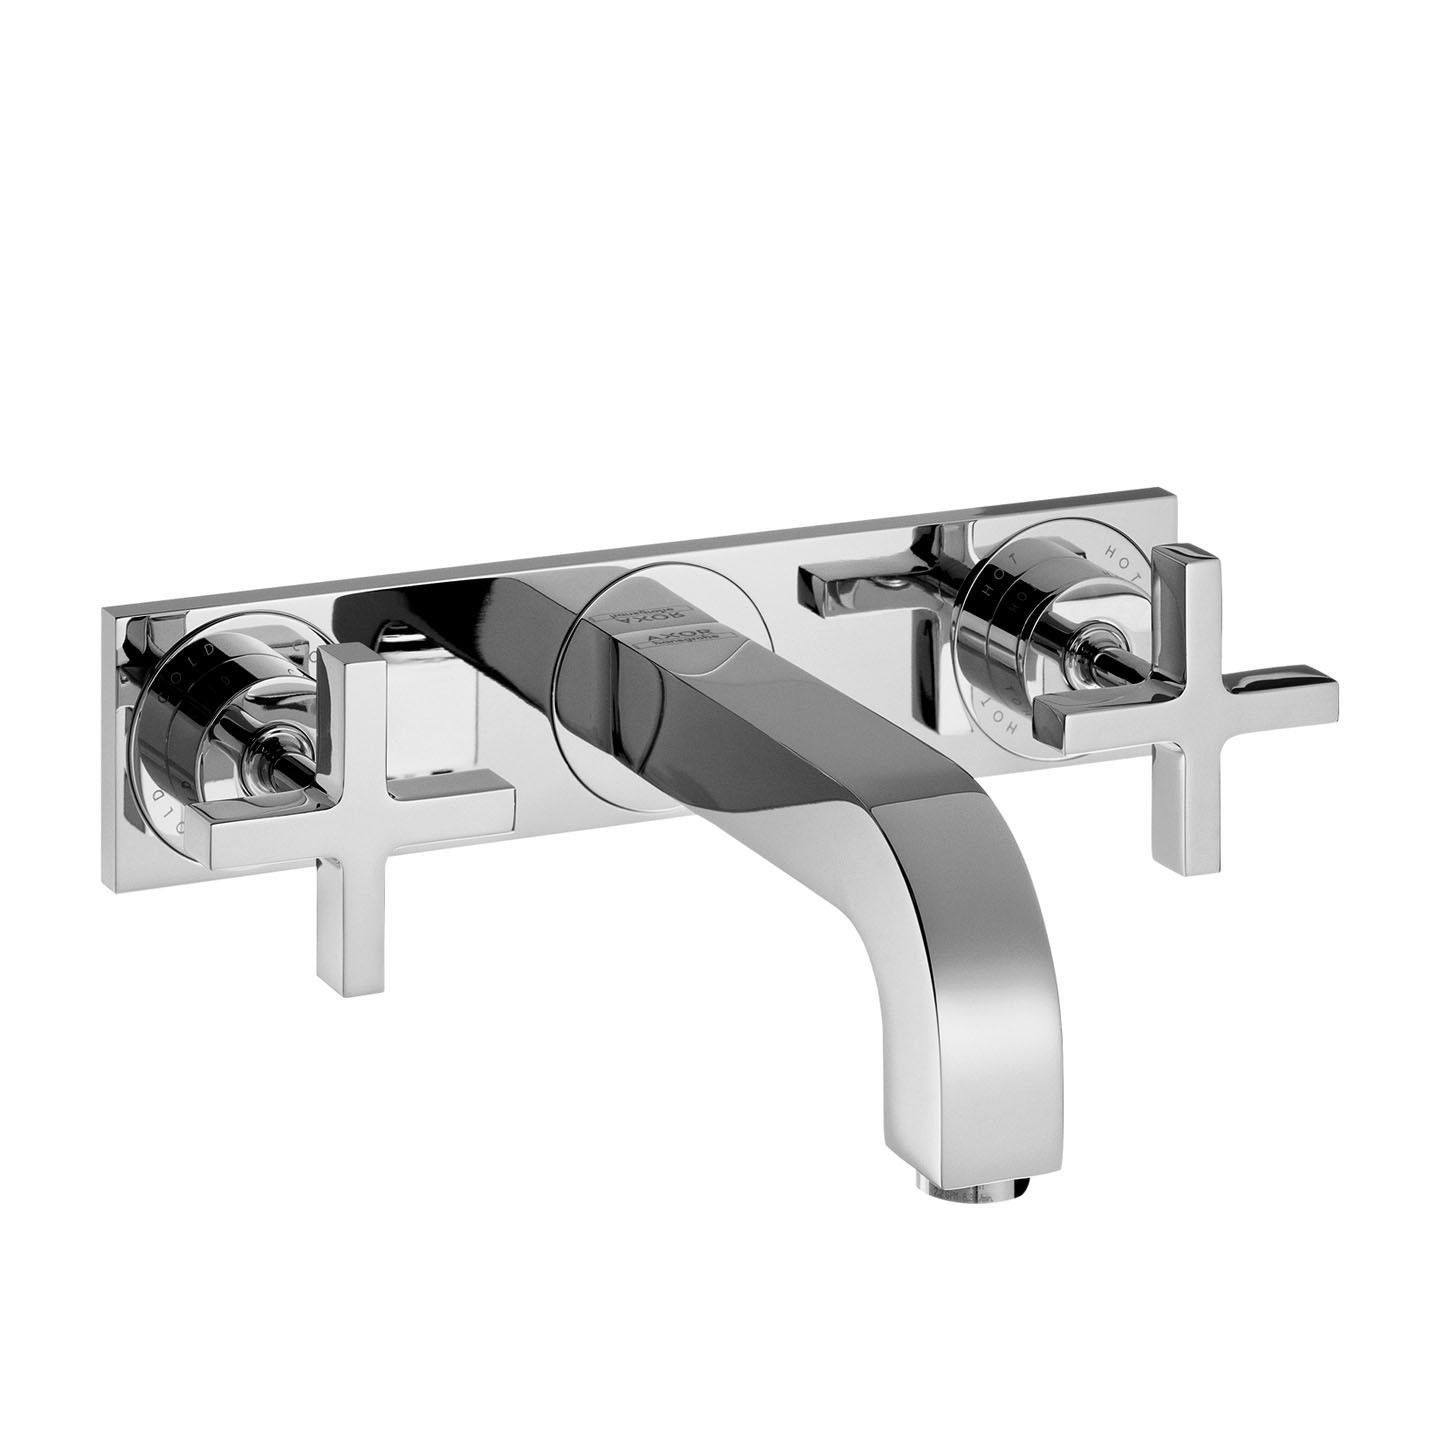 Axor Citterio wall mount | faucets | Pinterest | Wall mount, Tap and ...